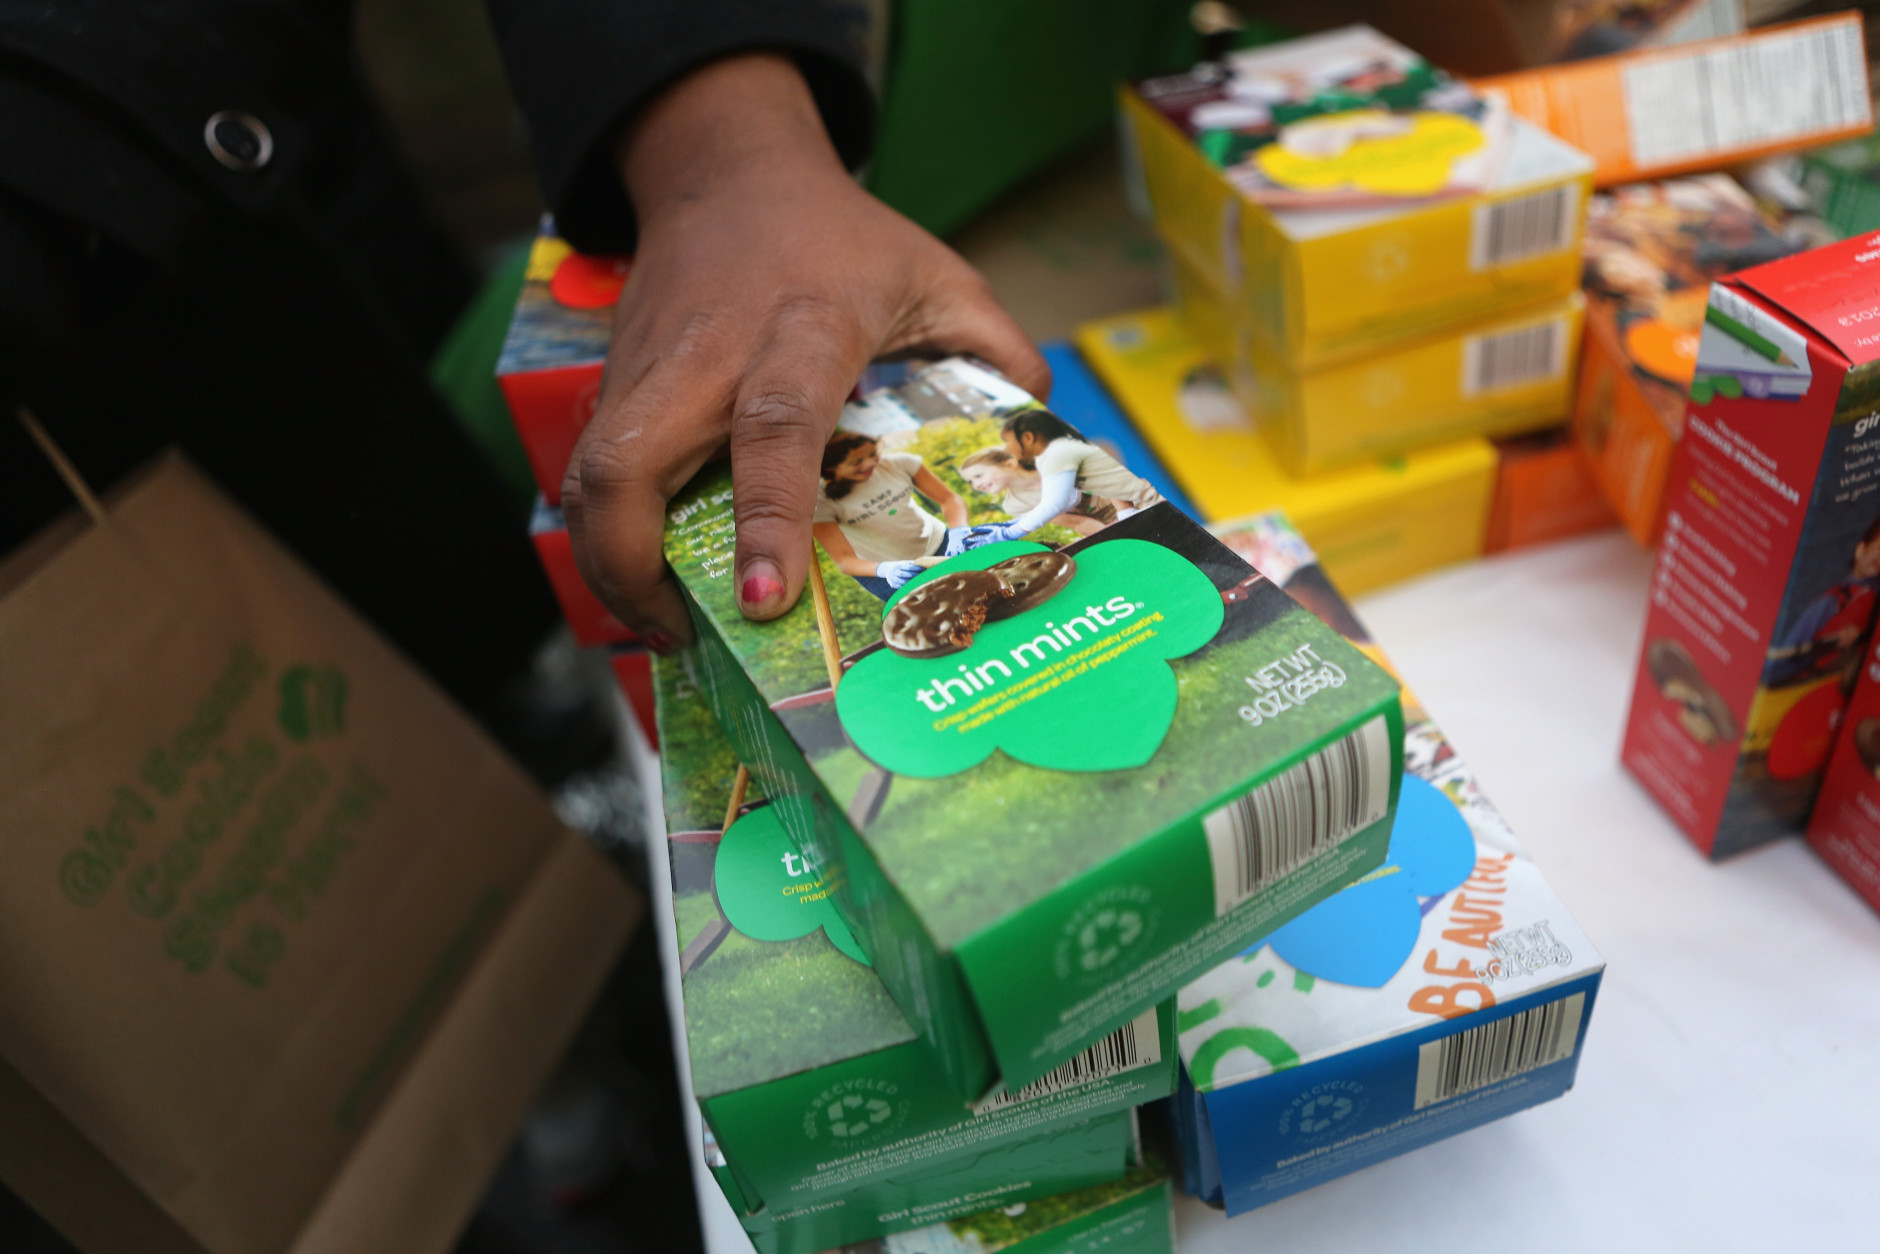 Girl Scout cookies are turning 100 years old, and are marking the occasion with the National Girl Scout Cookie Weekend in February. (Photo by John Moore/Getty Images)